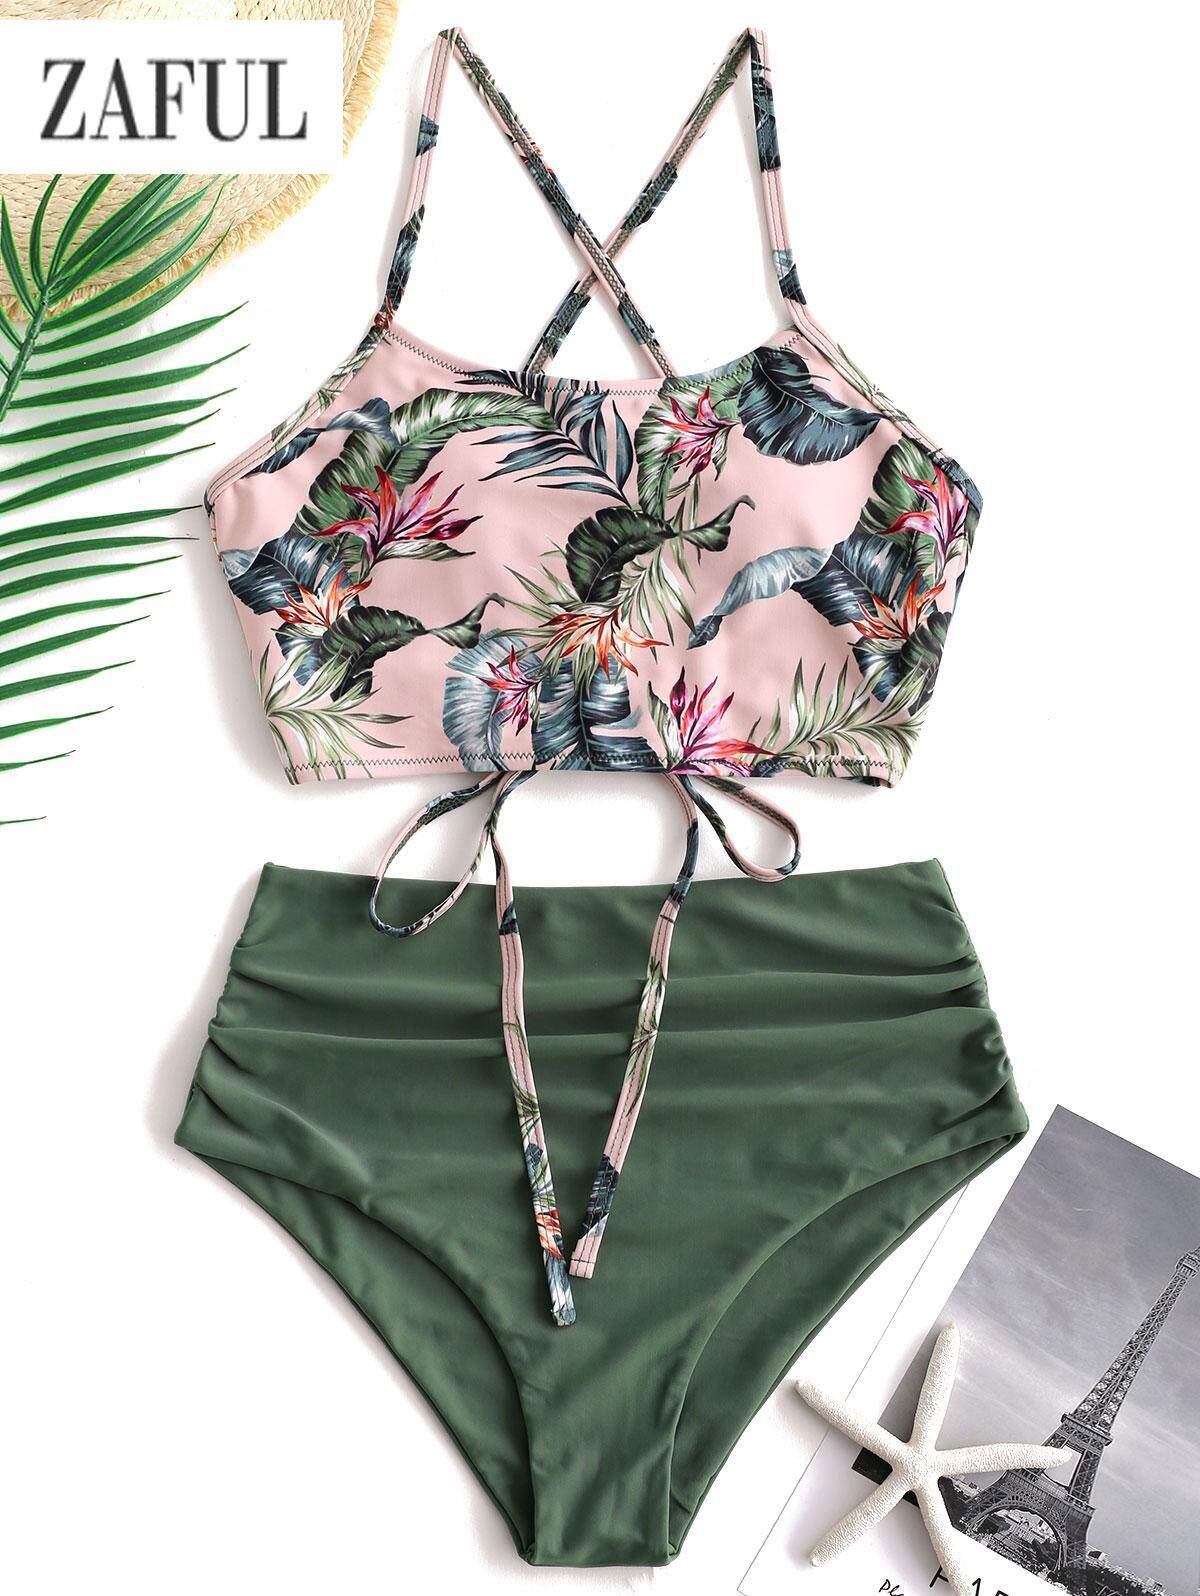 660e0c0bba ZAFUL Palm Floral Lace Up Blouson Padded Tankini Set Two Pieces Swimsuit  for women on saleHigh